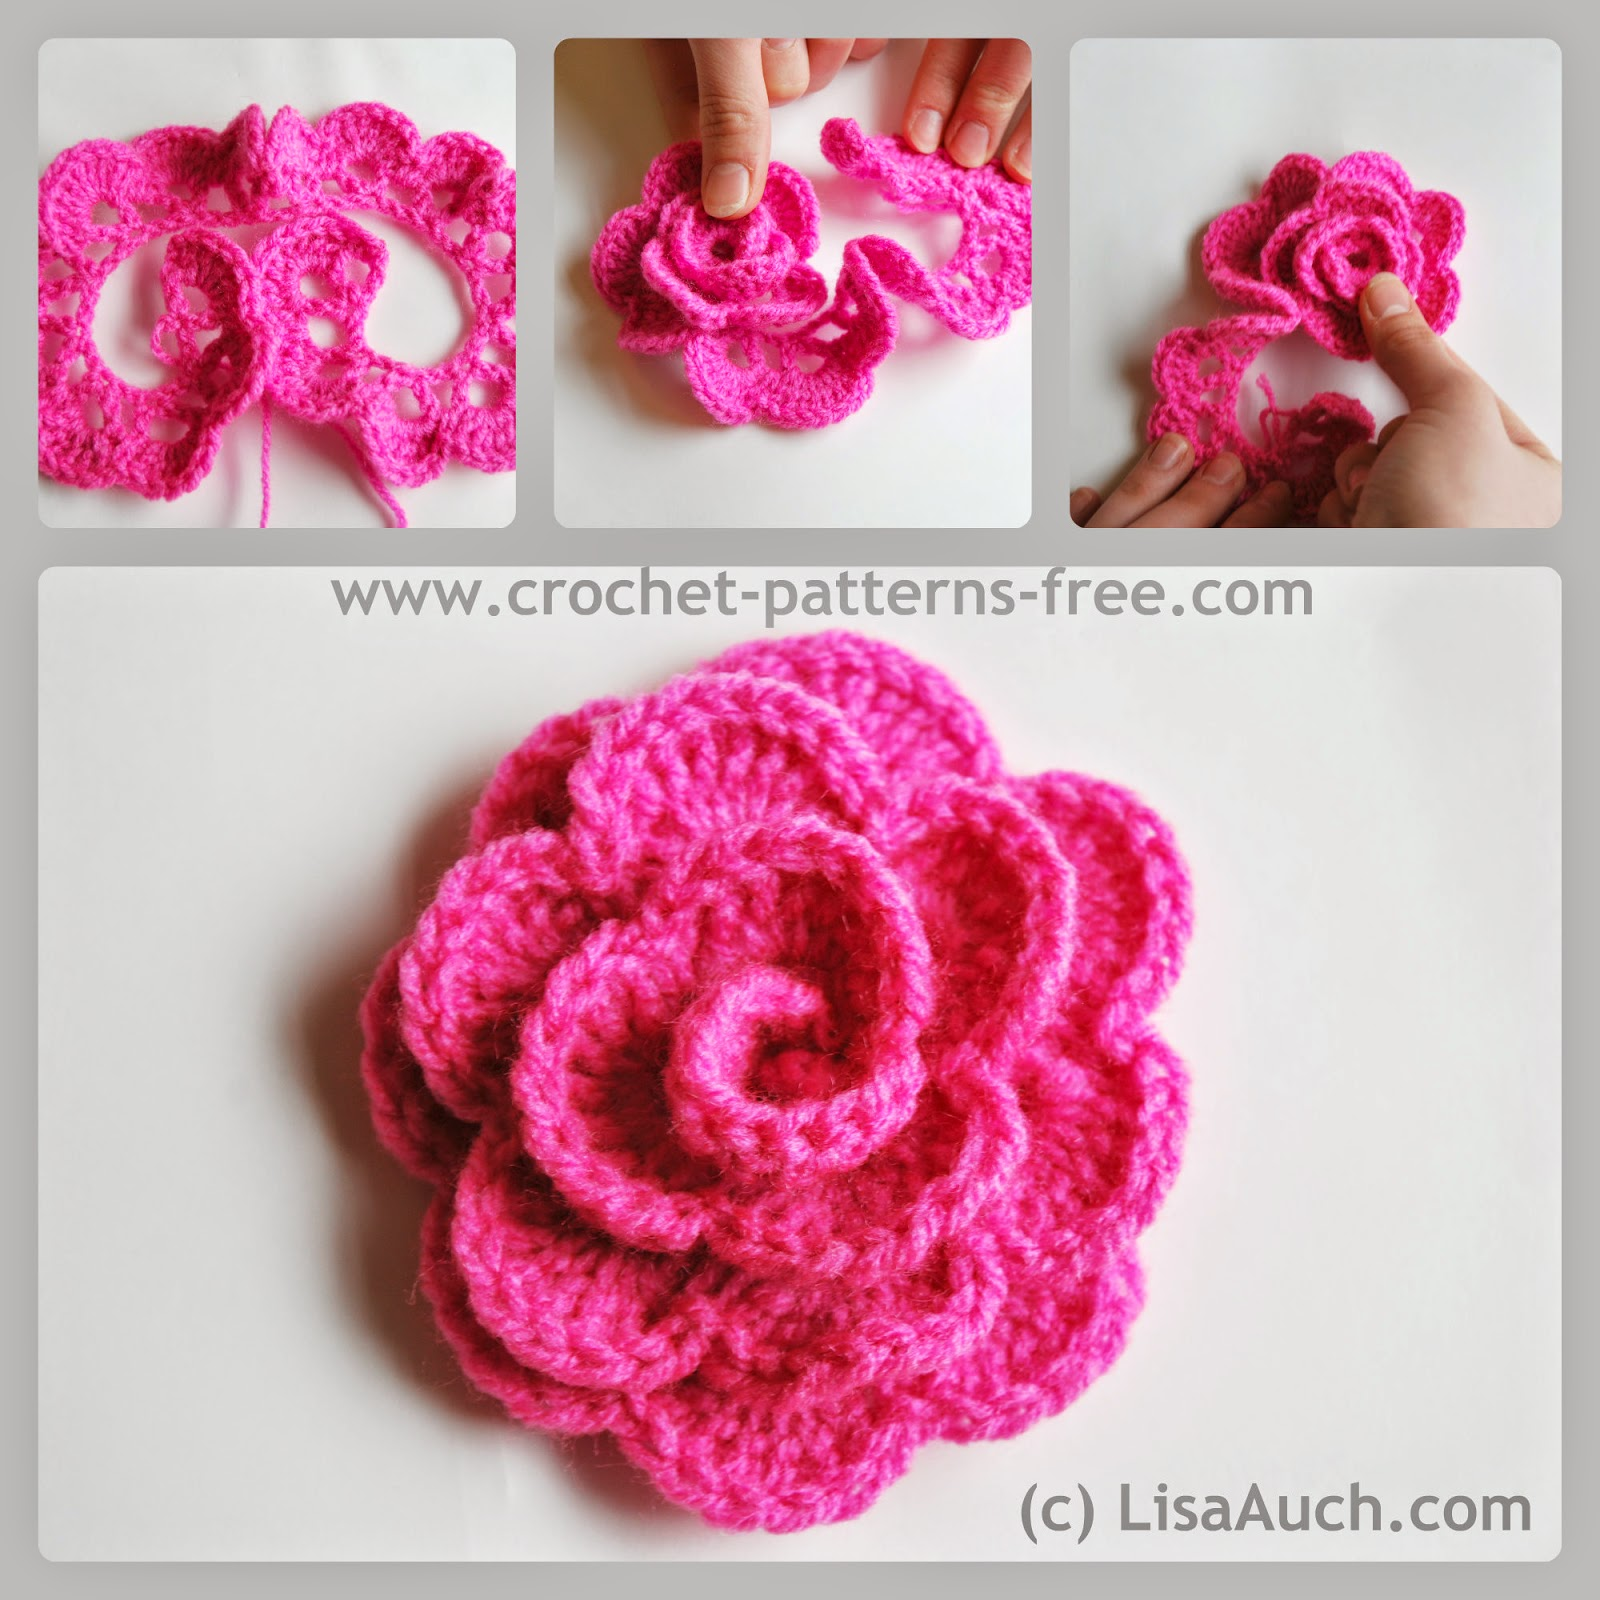 Simple Crochet Flower Free Pattern : Rose Hip Blog Crochet Flower Pattern 2016 Car Release Date